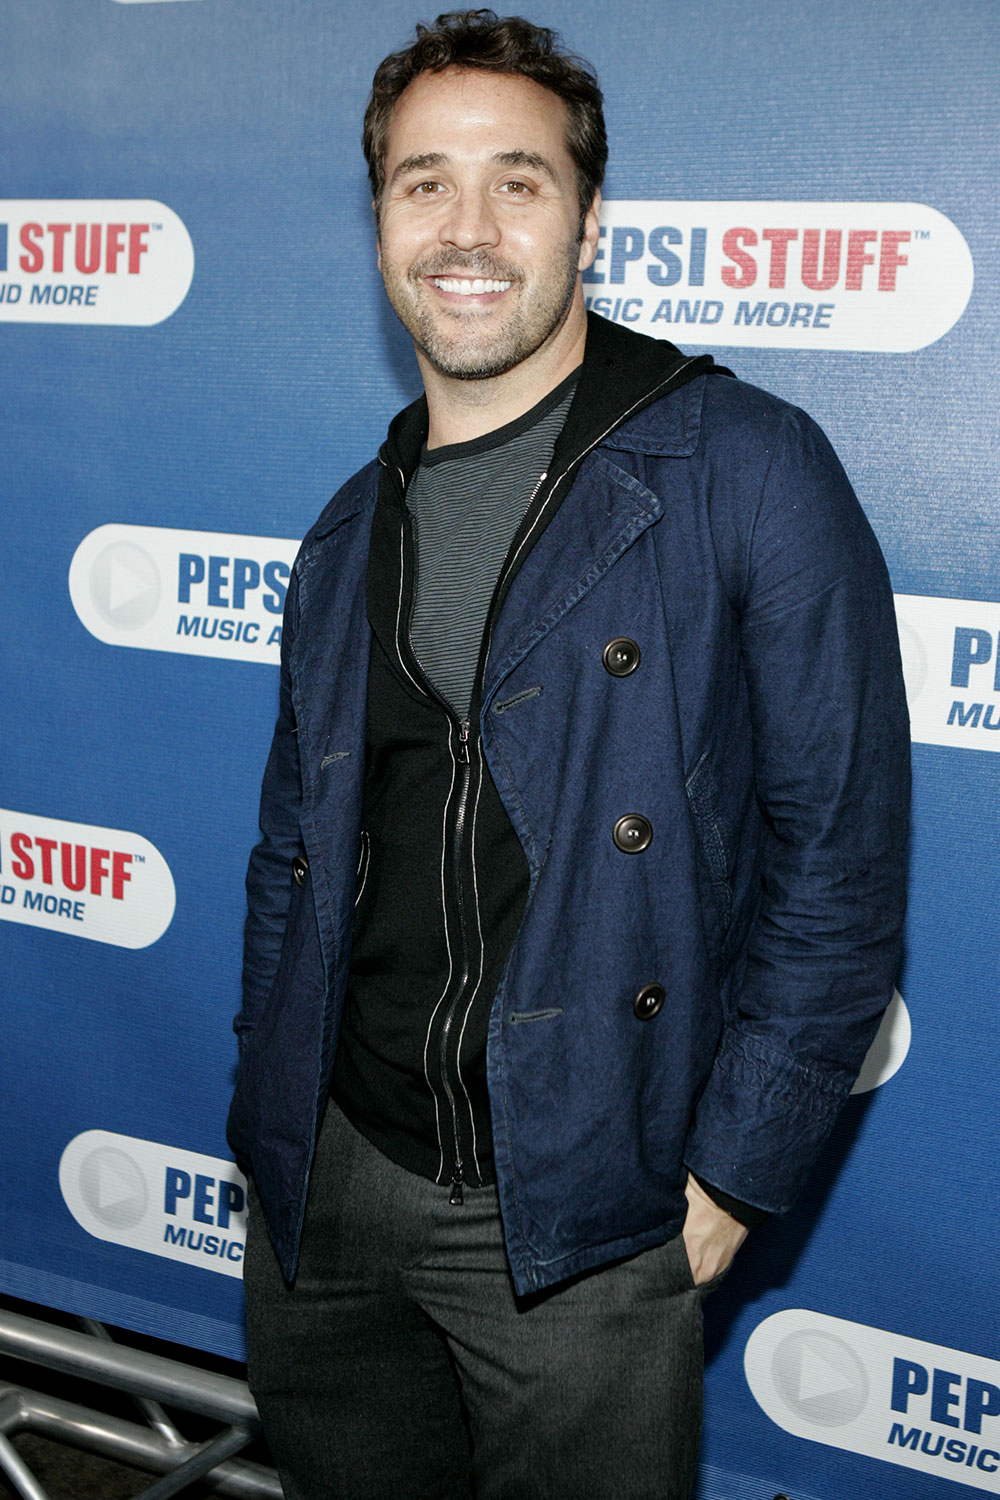 toast-jeremy-pivena-celebrity-red-carpet-pepsi-stuff-10twelve.jpg